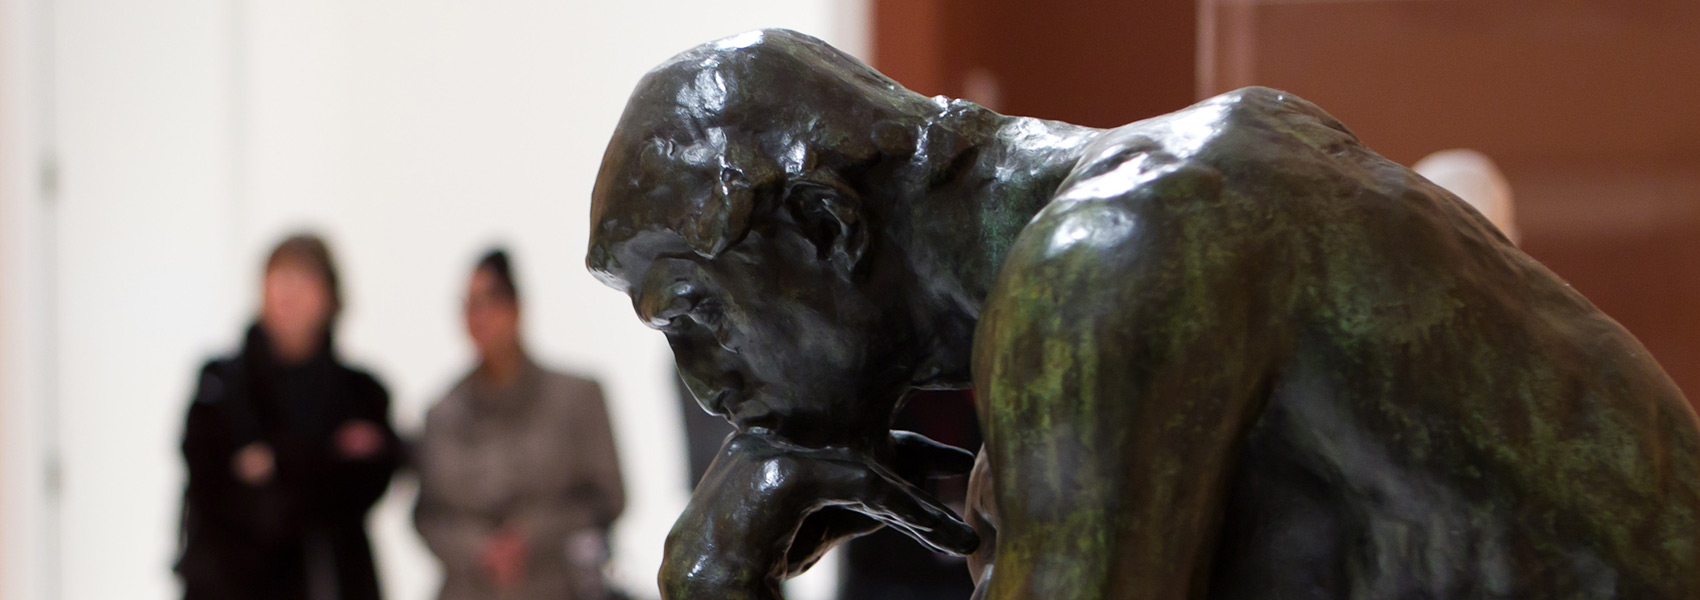 The Thinker on view in the Smart's galleries